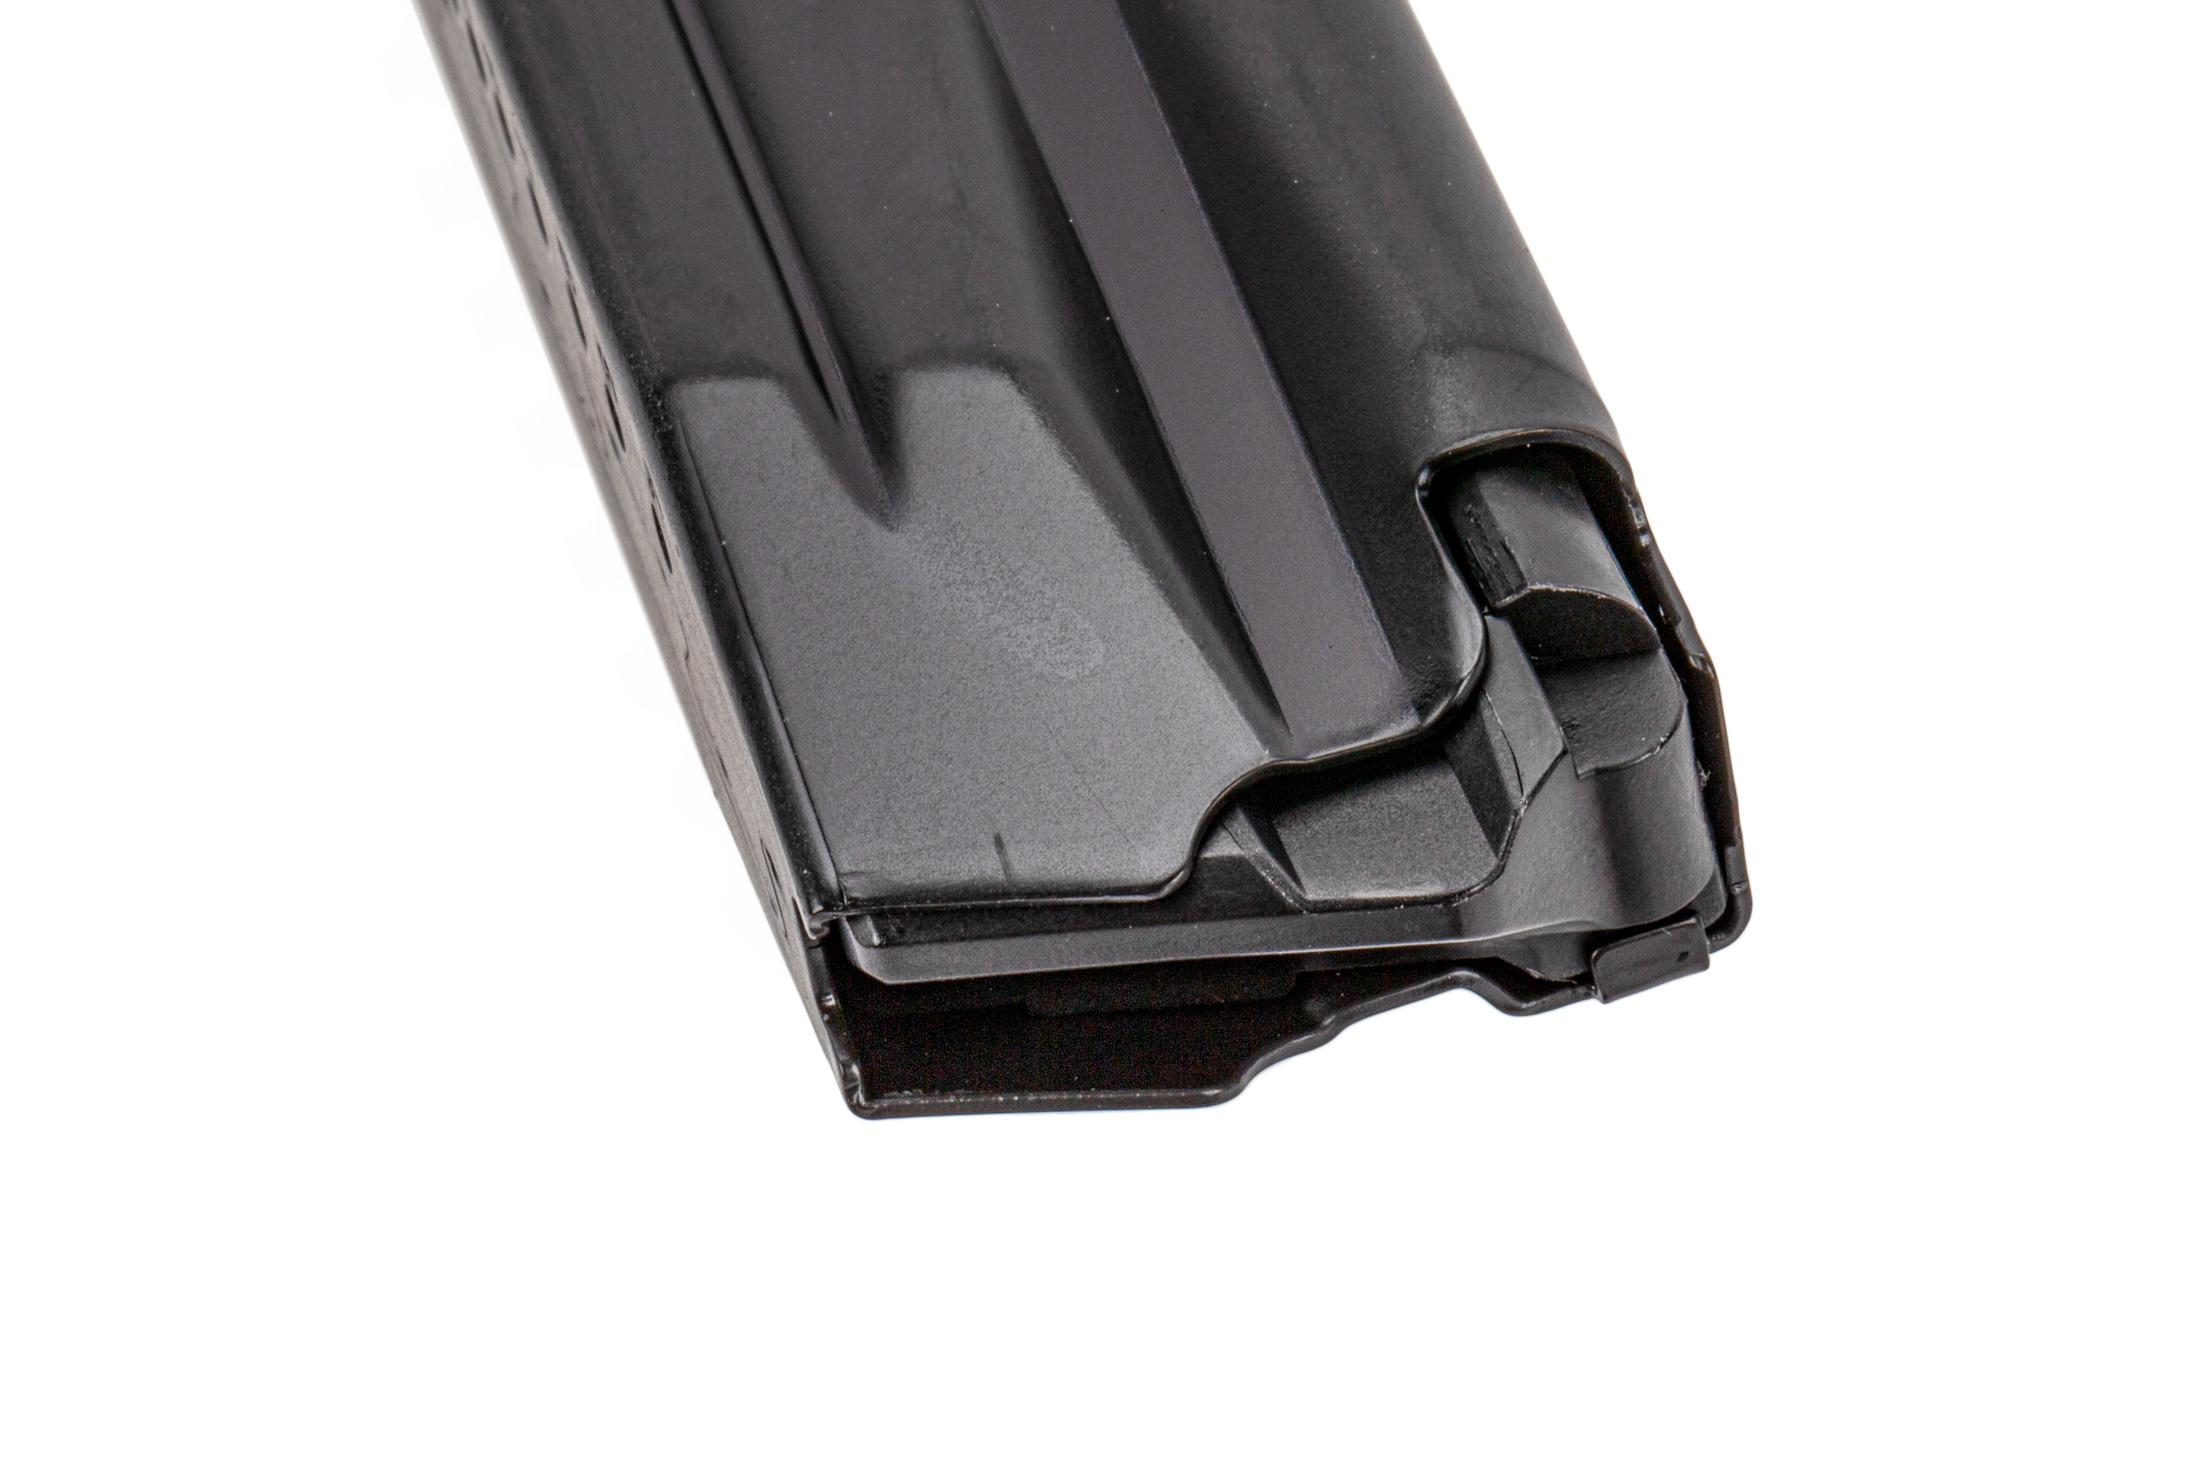 The H&K VP9SK 9mm 15 round Magazine features an easily removable polymer base plate